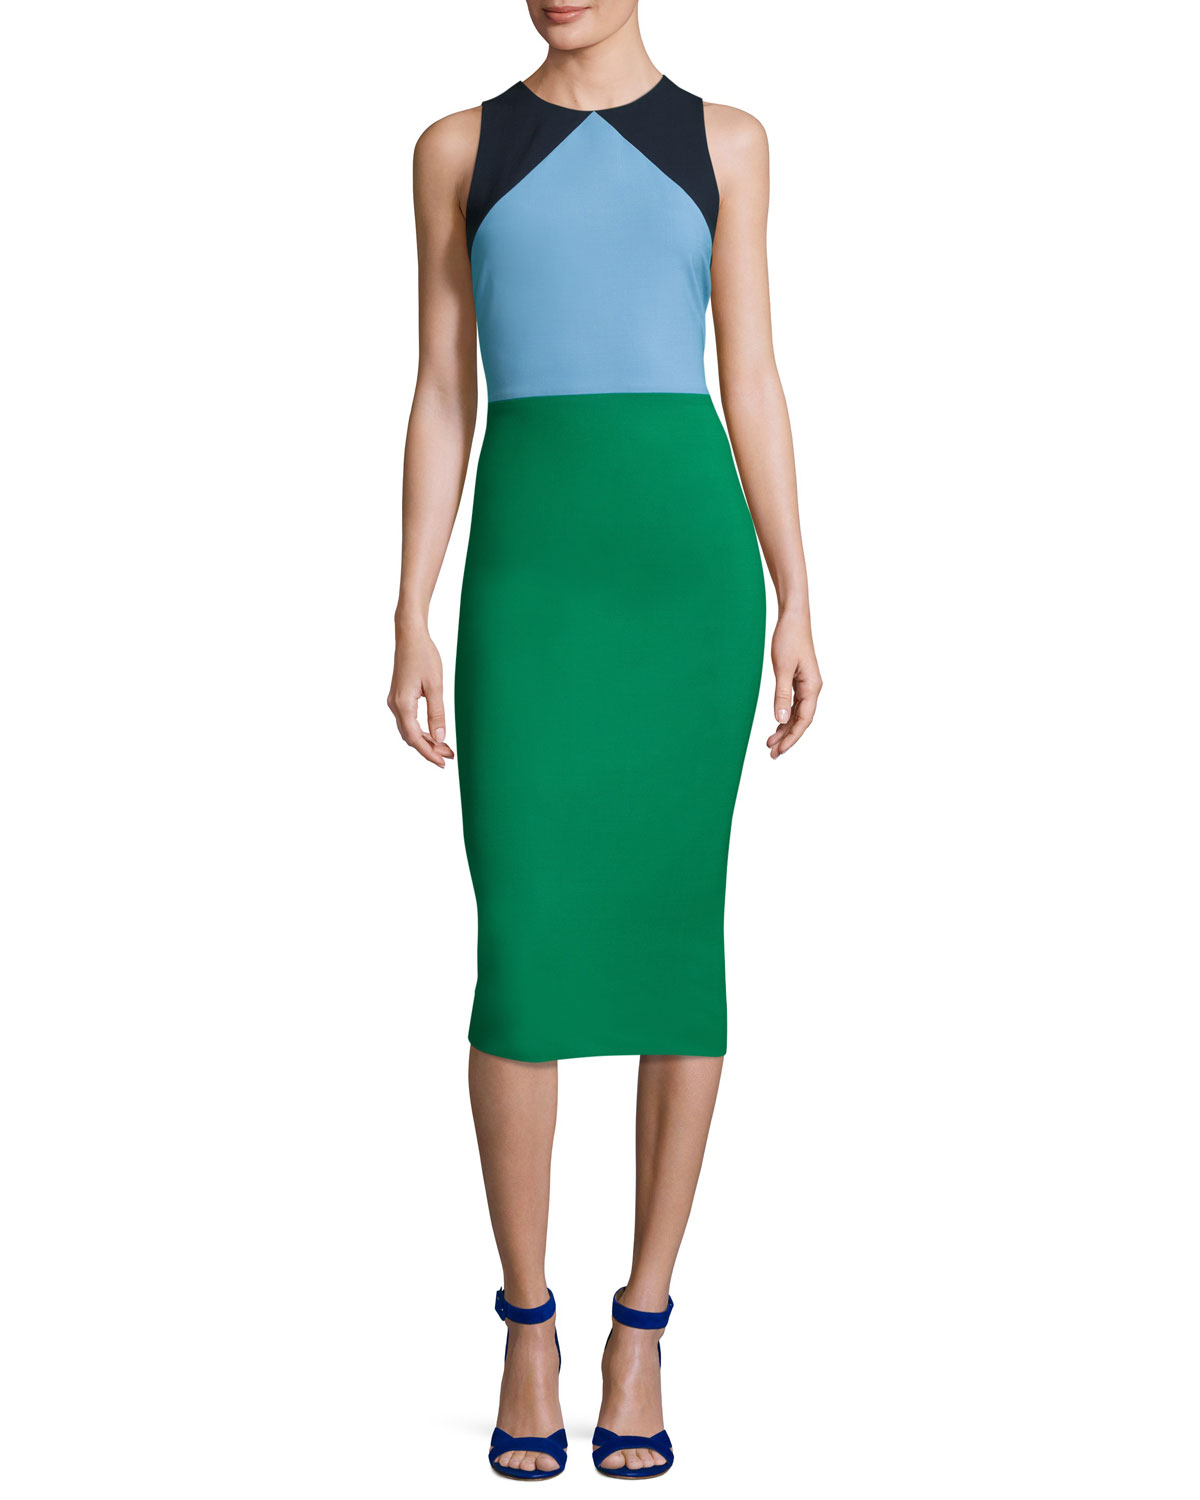 Sleeveless Tailored Colorblock Midi Dress Green Blue Navy